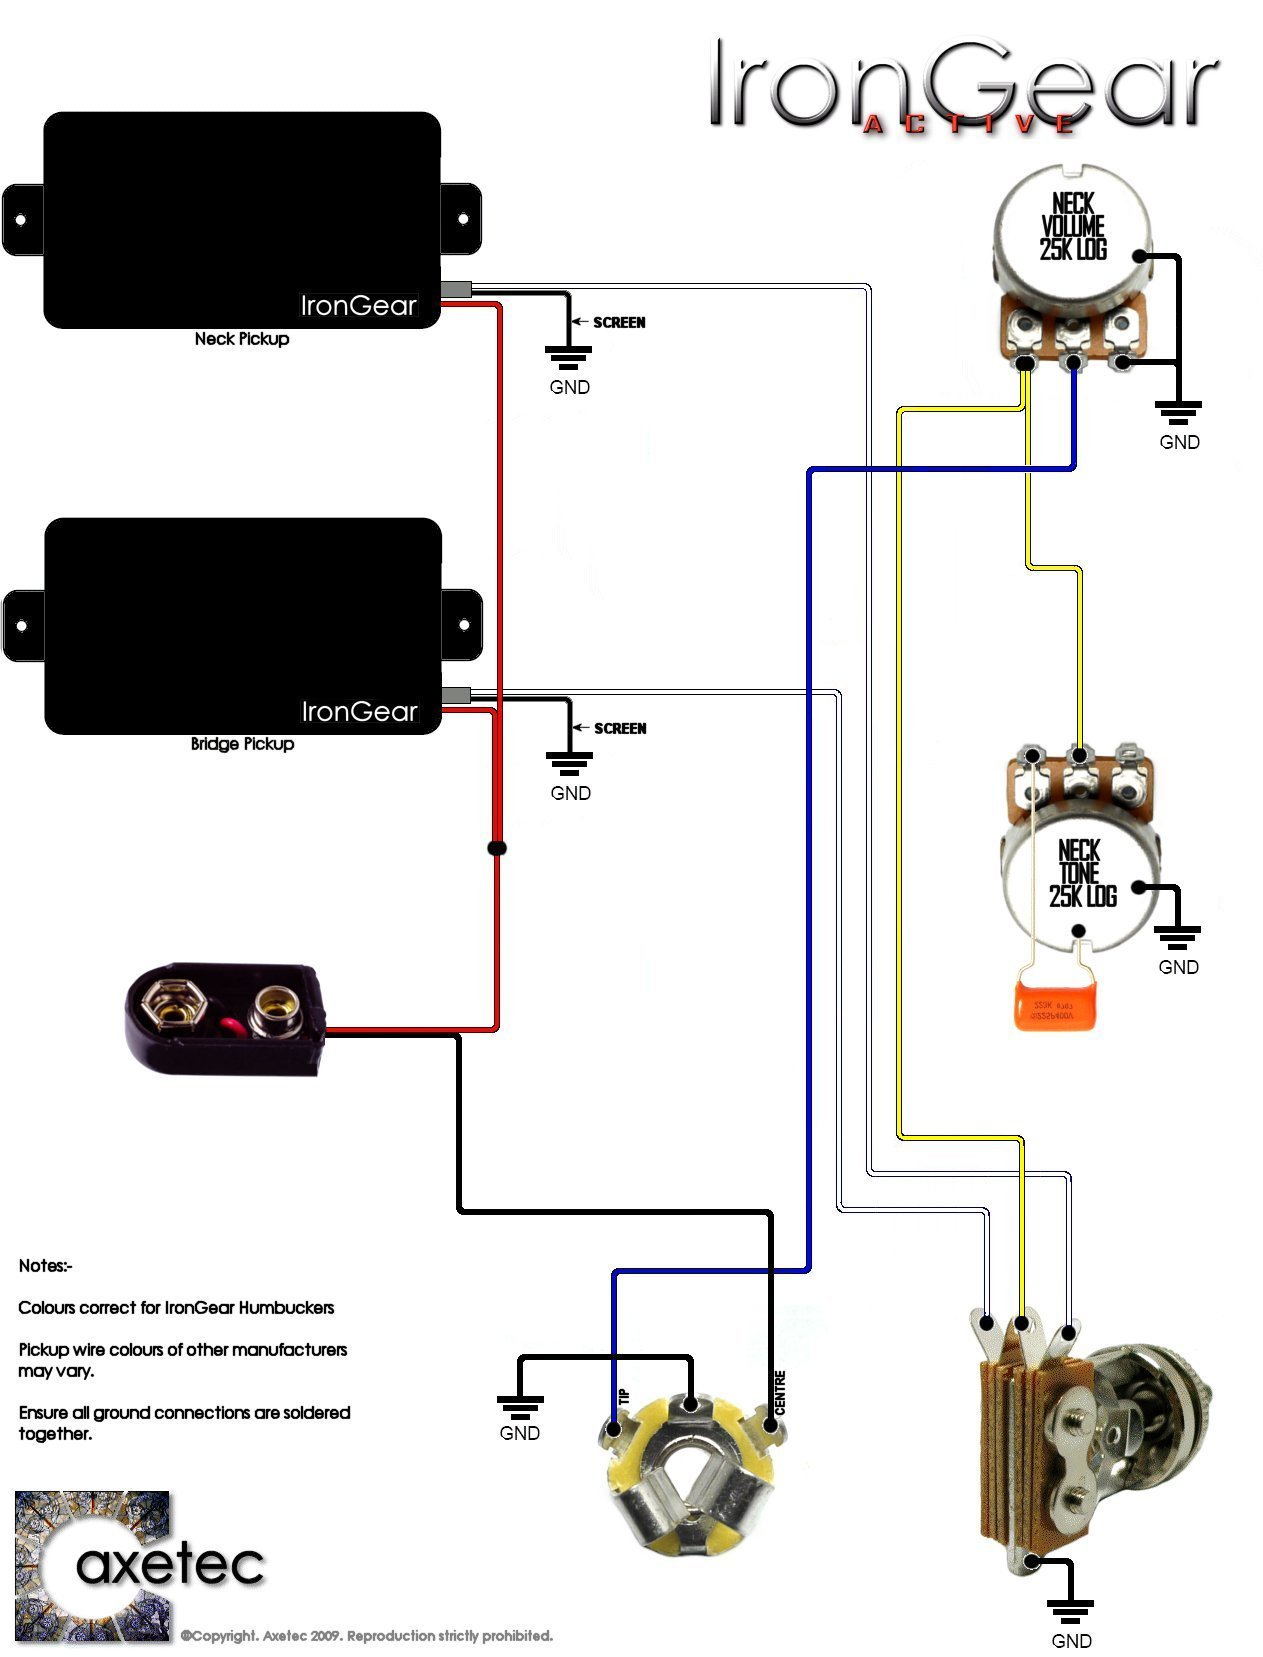 Emg Hsh Wiring - Technical Diagrams Ibanez Rg Wiring Diagram Push Pull on